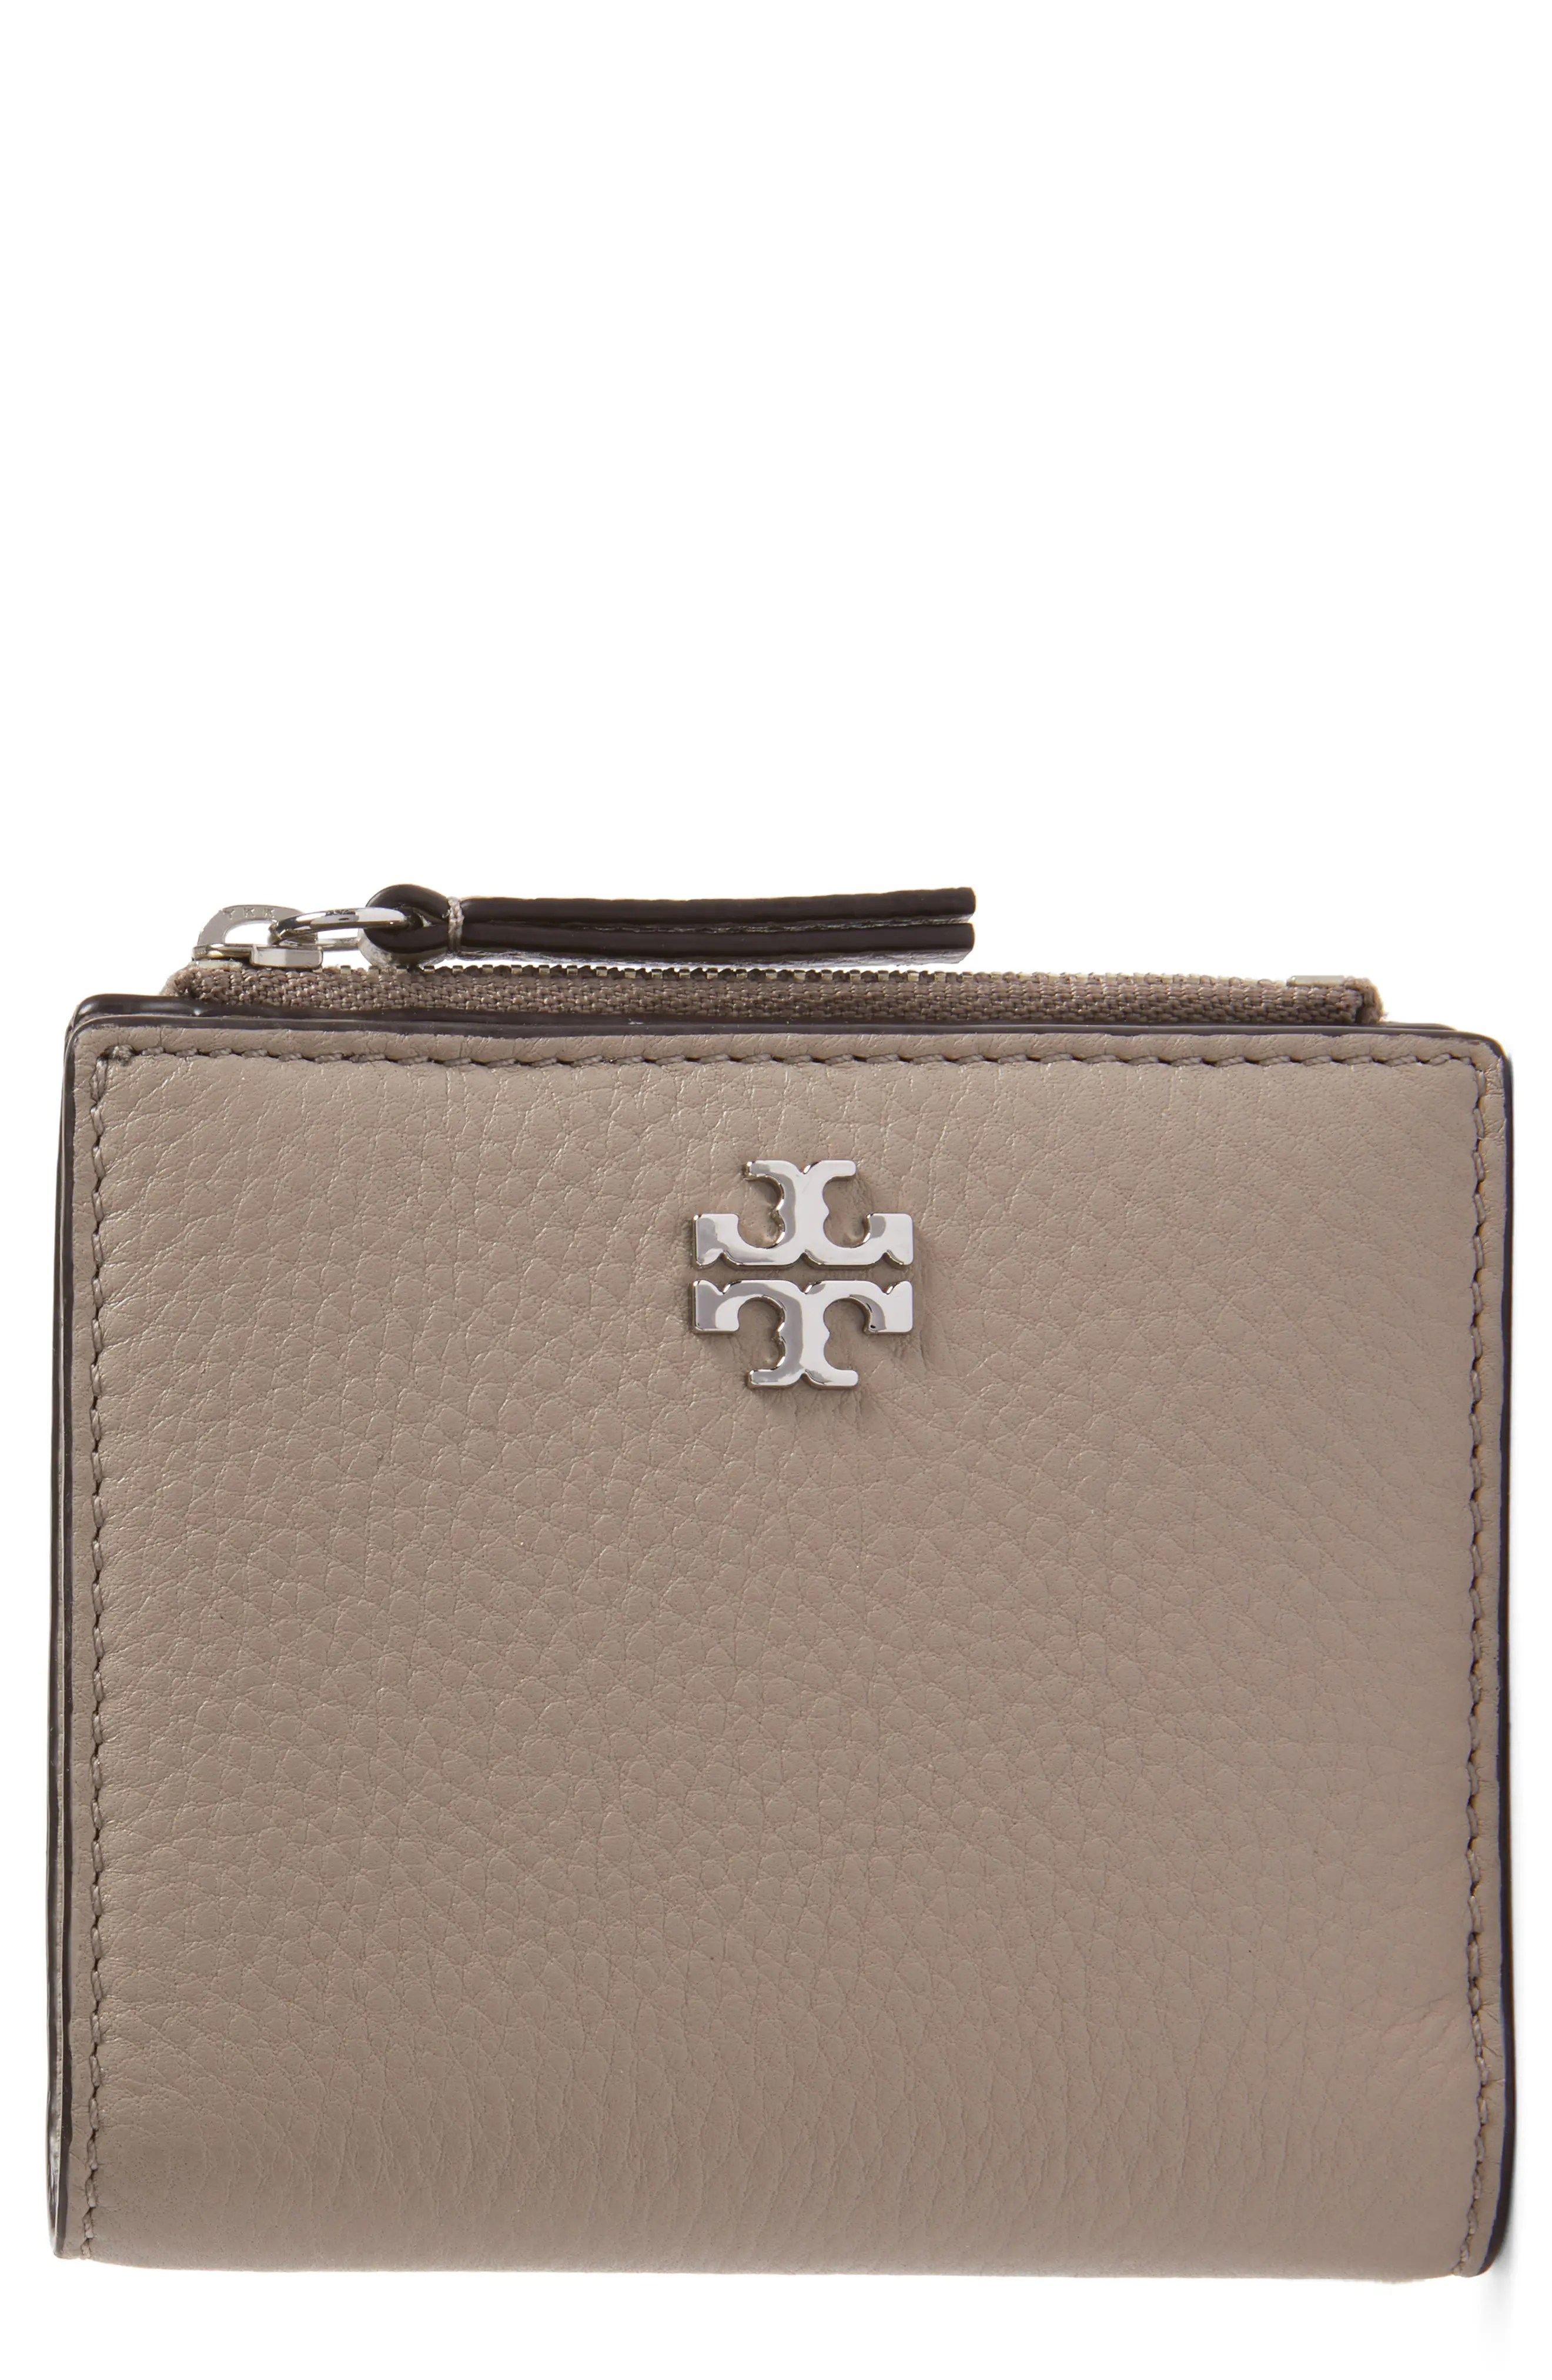 Main Image - Tory Burch Mini Frida Leather Wallet (Nordstrom Exclusive)